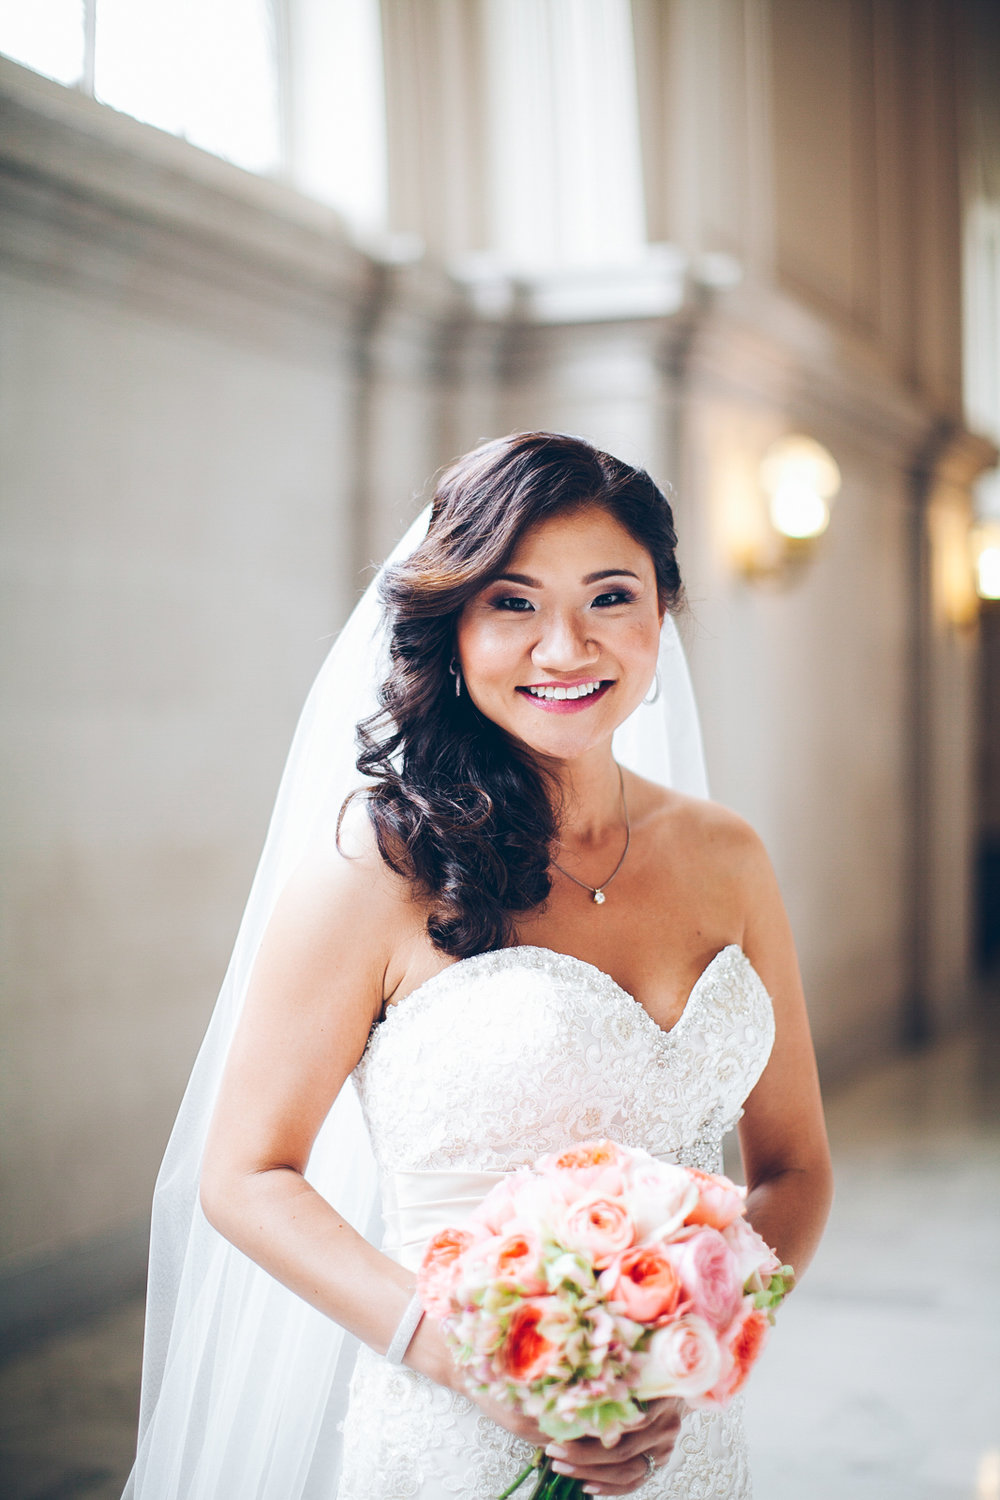 San_francisco_city_hall_wedding_photography_meegan_travis_ebony_siovhan_bokeh_photography_39.jpg